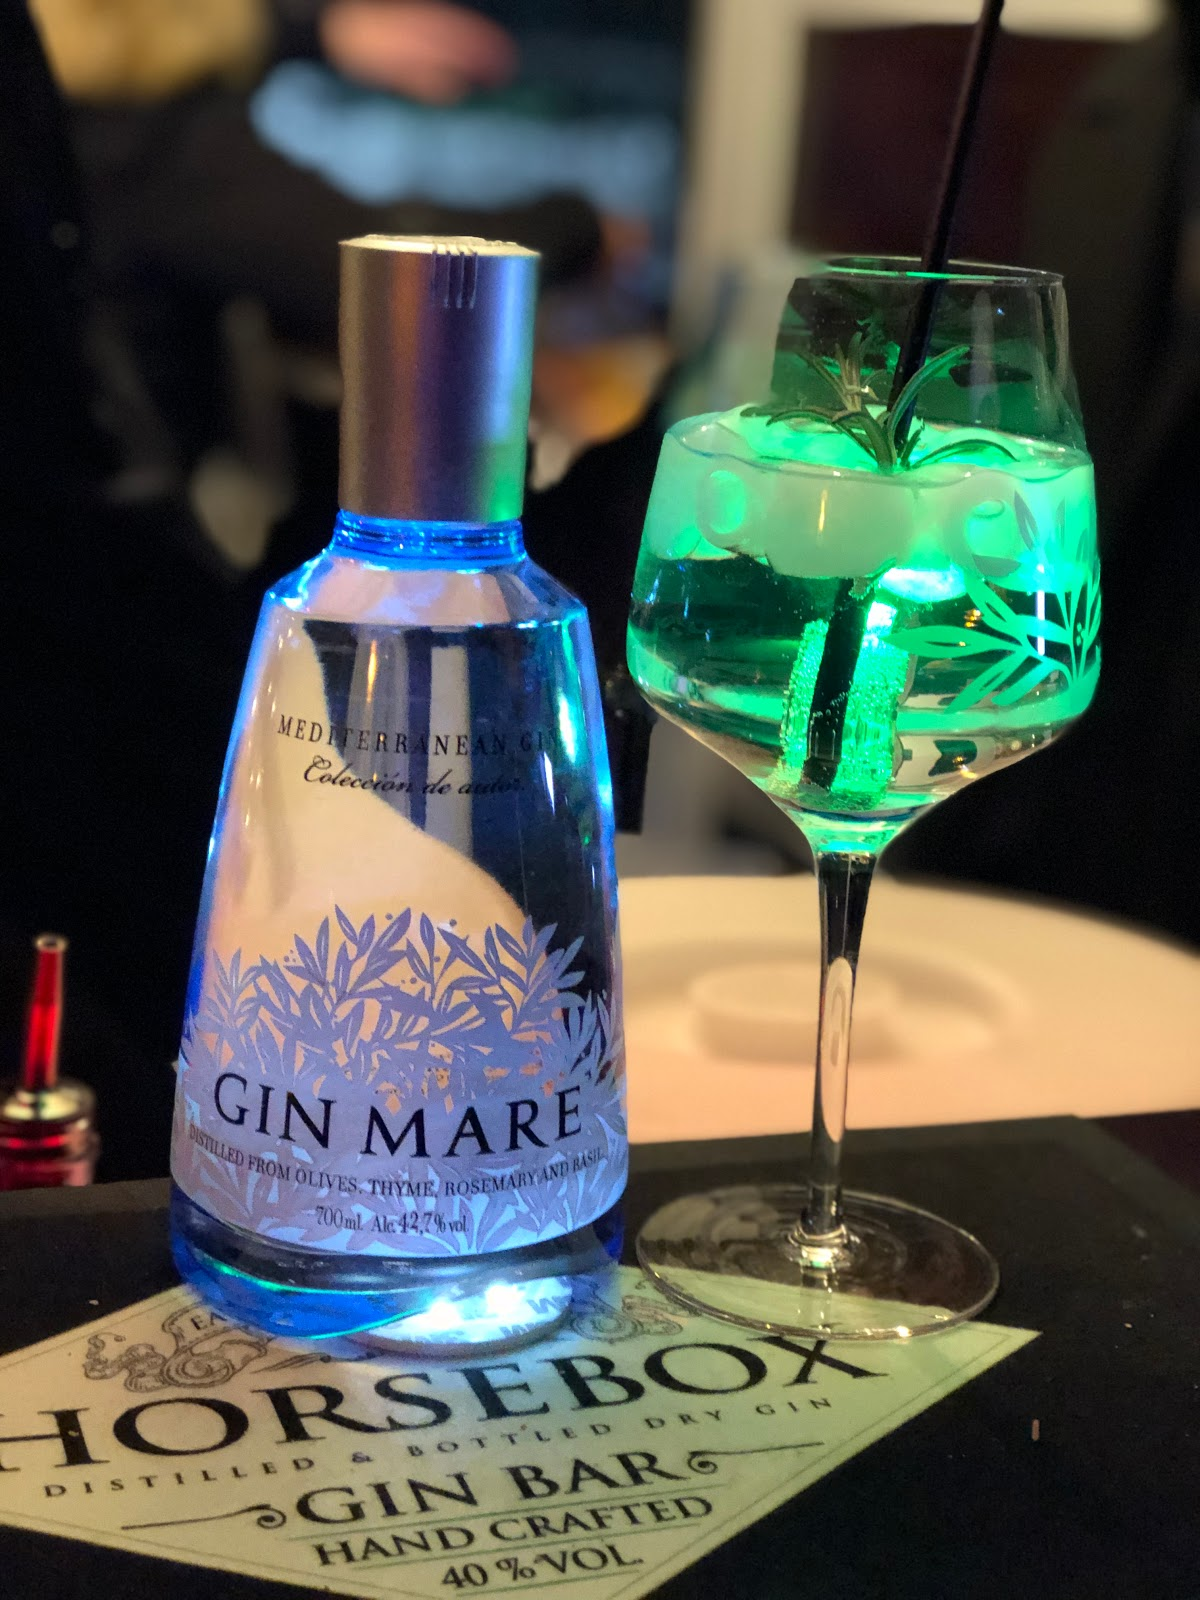 Gin Mare, Thomas Henry, Gin Tonic, 4 Gin and Drinks, Horseboxbar, Event-Bar, mobile Bar, Bayern, Garmisch-Partenkirchen, Gin-Bar, Oberammergau, König-Ludwig-Lauf by Uschi Glas 4 weddings and events